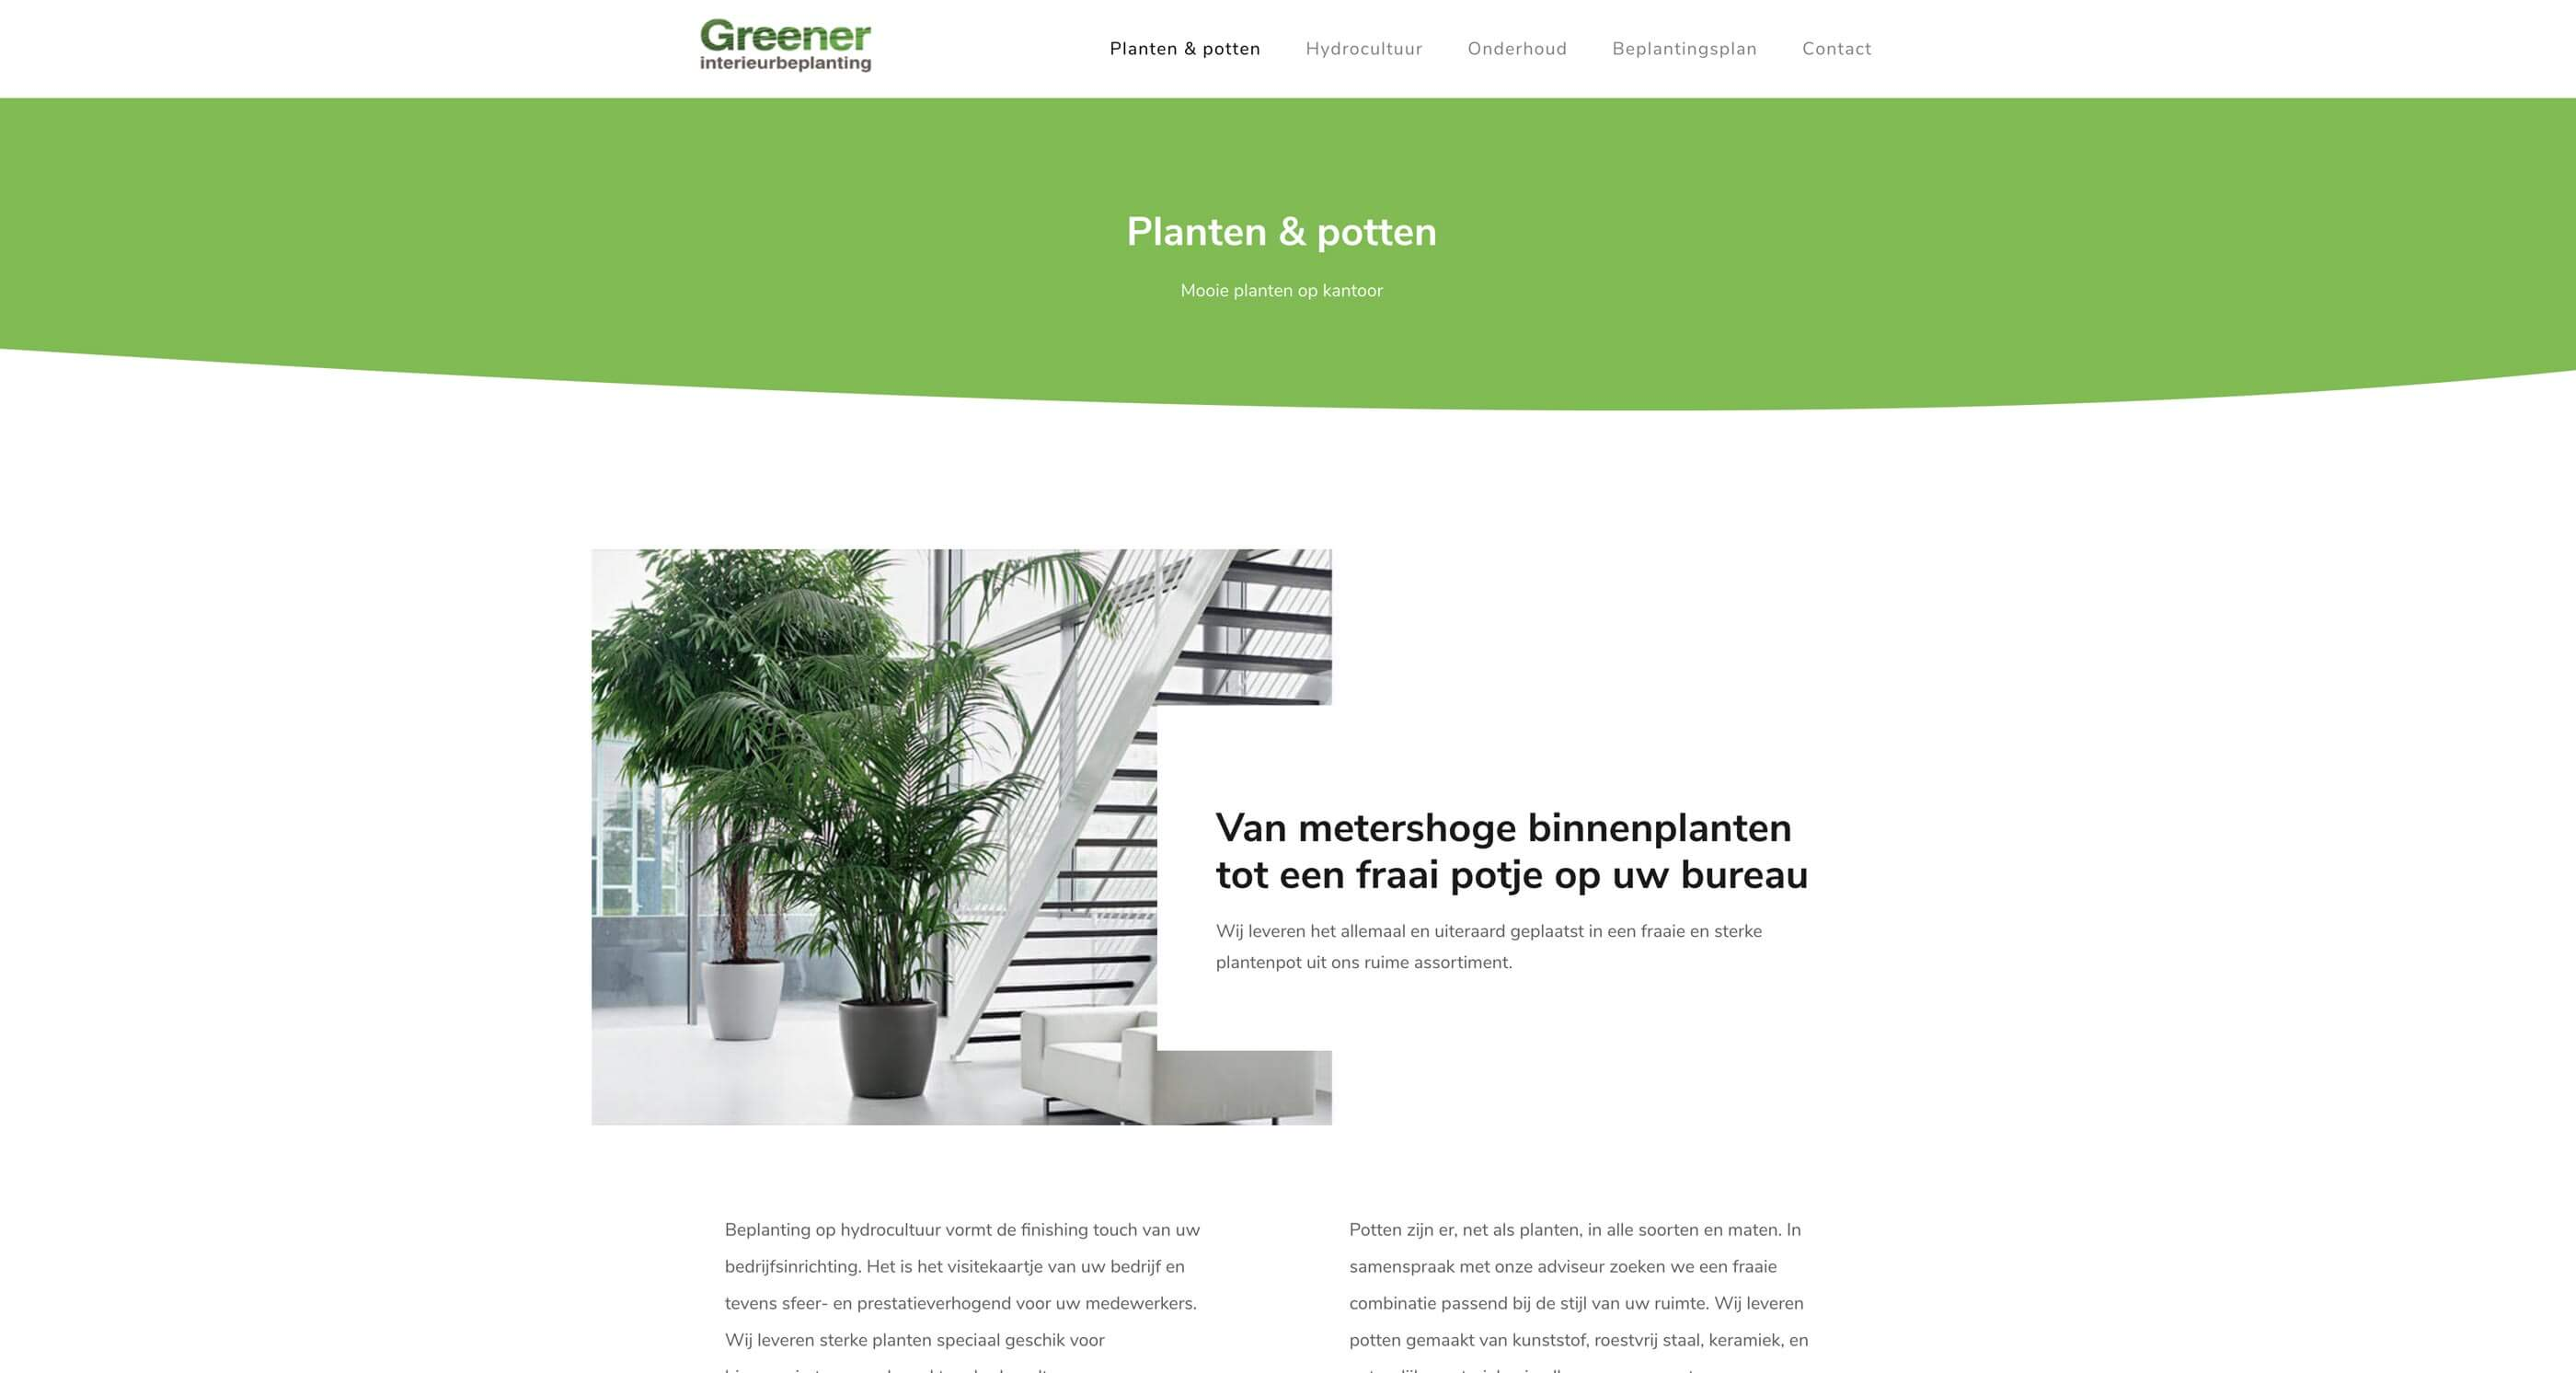 Greener Interieurbeplanting.jpg website